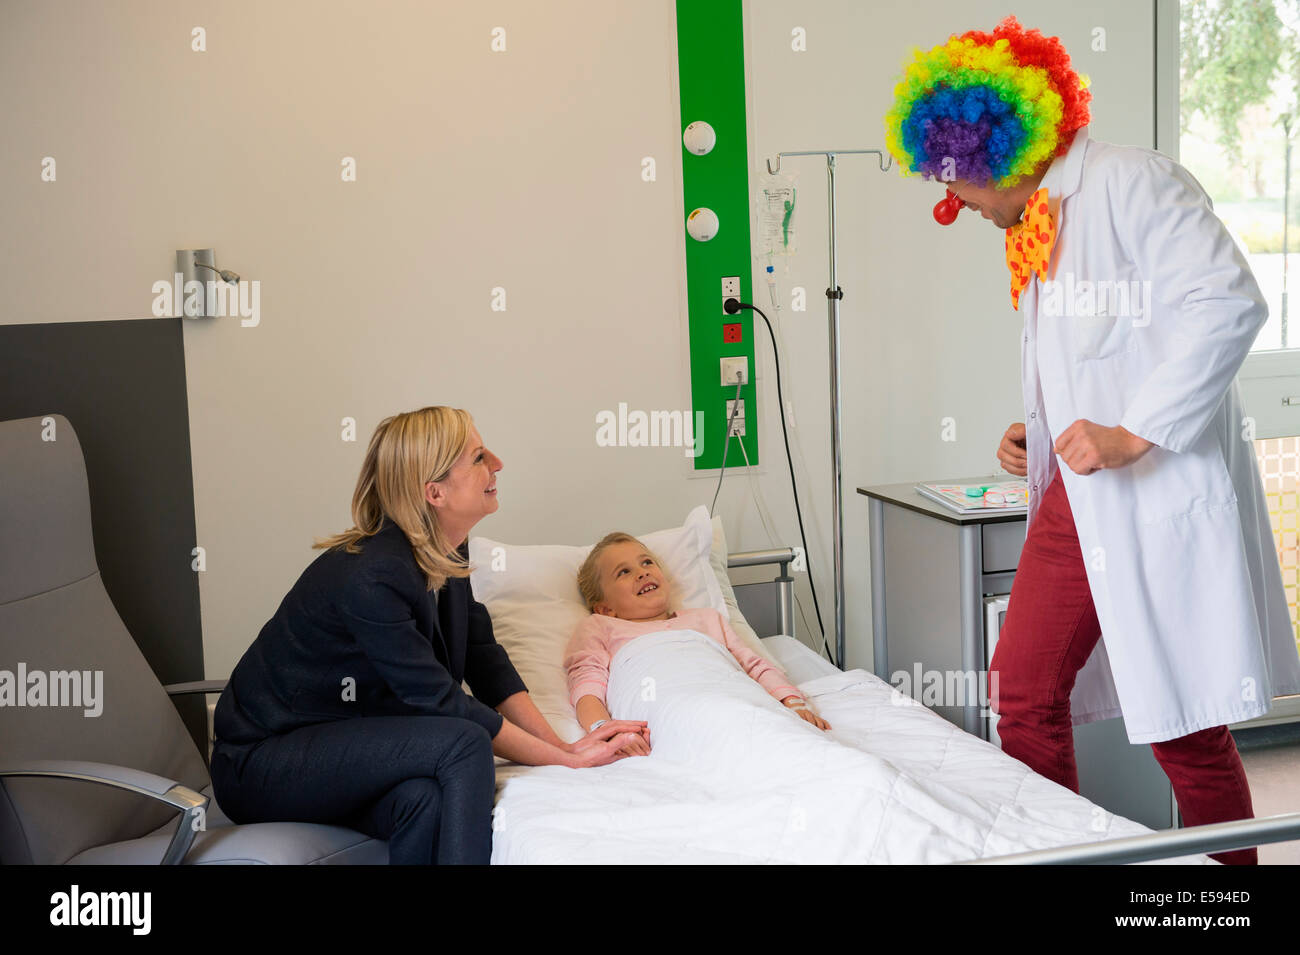 Male doctor wearing clown costume making girl patient laugh in hospital bed Stock Photo